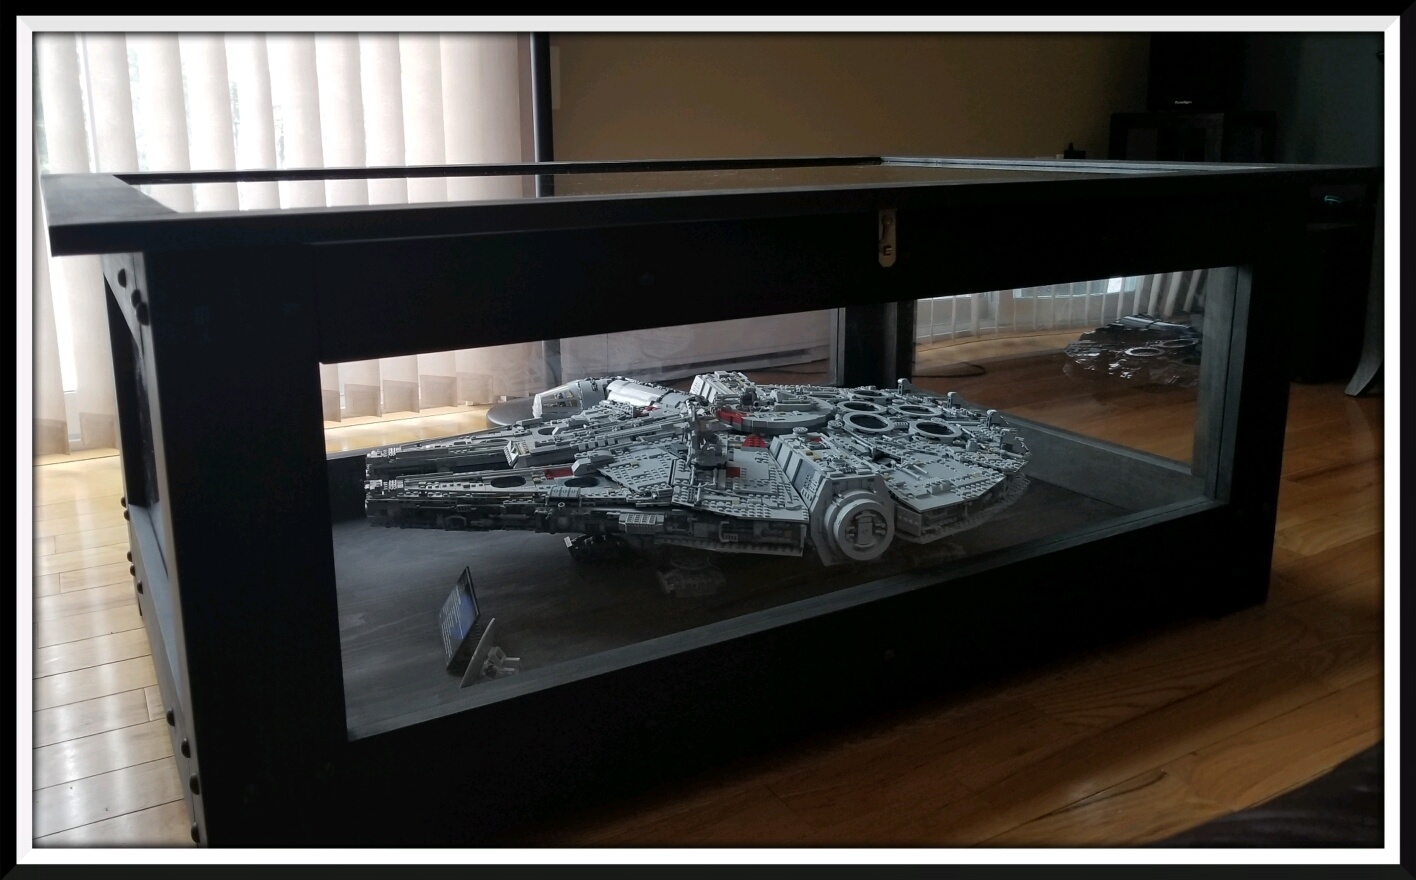 The Millennium Falcon UCS 75192 Lego Set Has Found Its Home Inside Our This Display Table